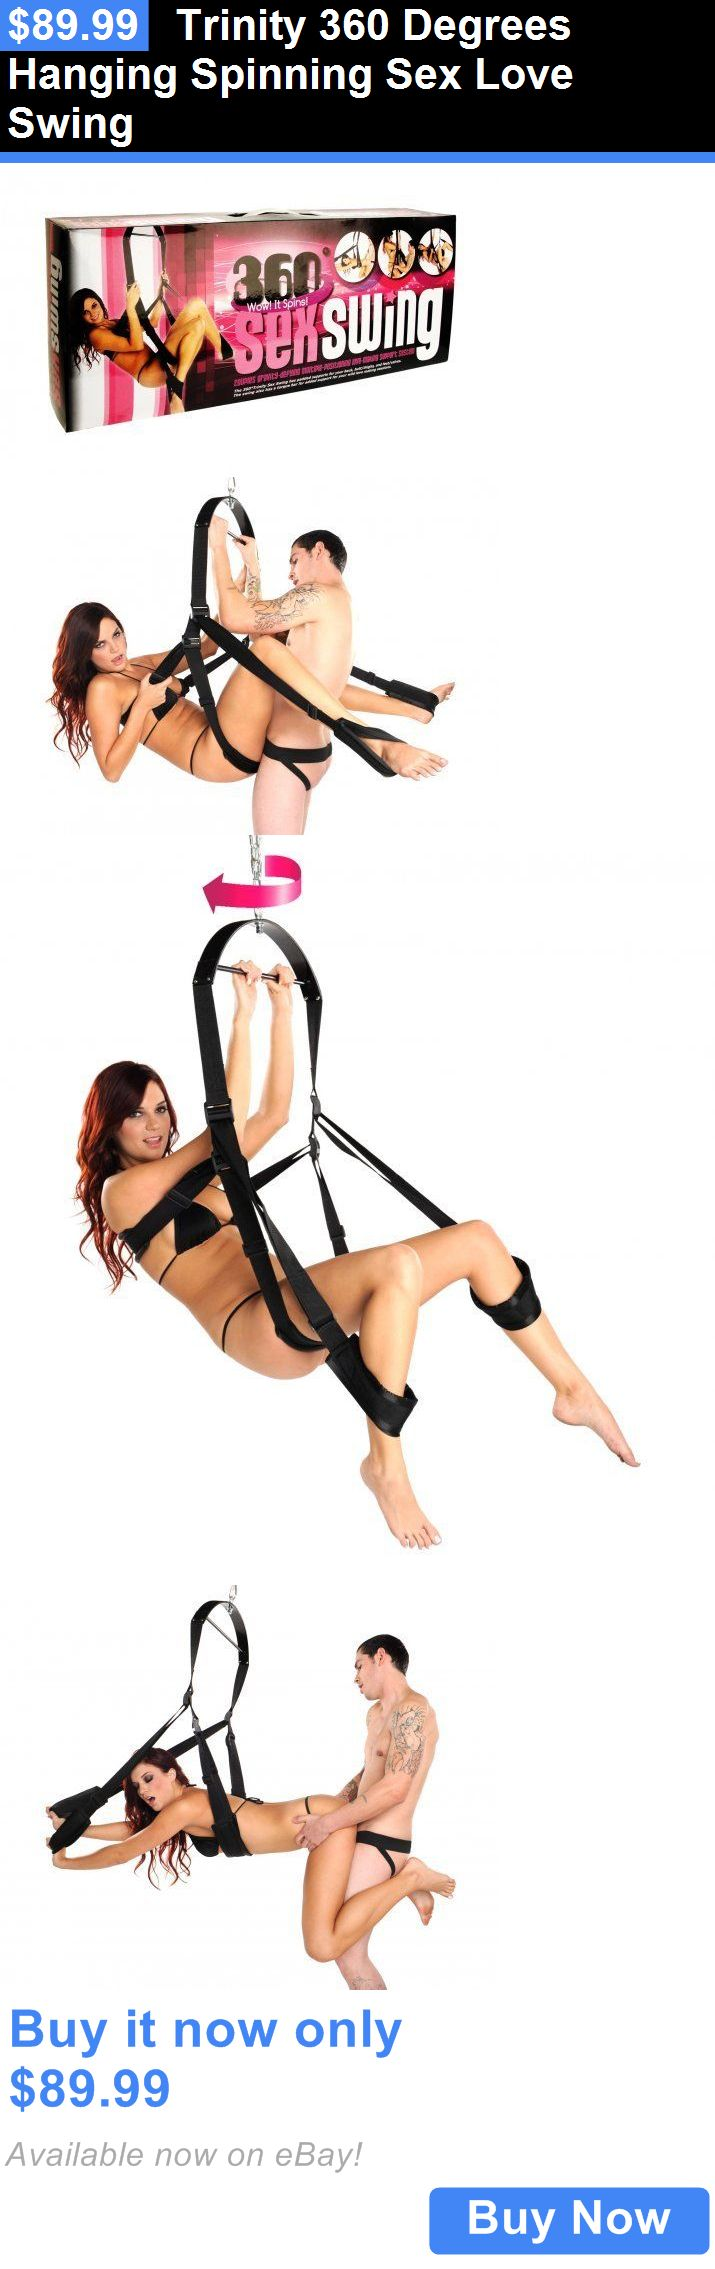 Other Sexual Wellness: Trinity 360 Degrees Hanging Spinning Sex Love Swing BUY IT NOW ONLY: $89.99